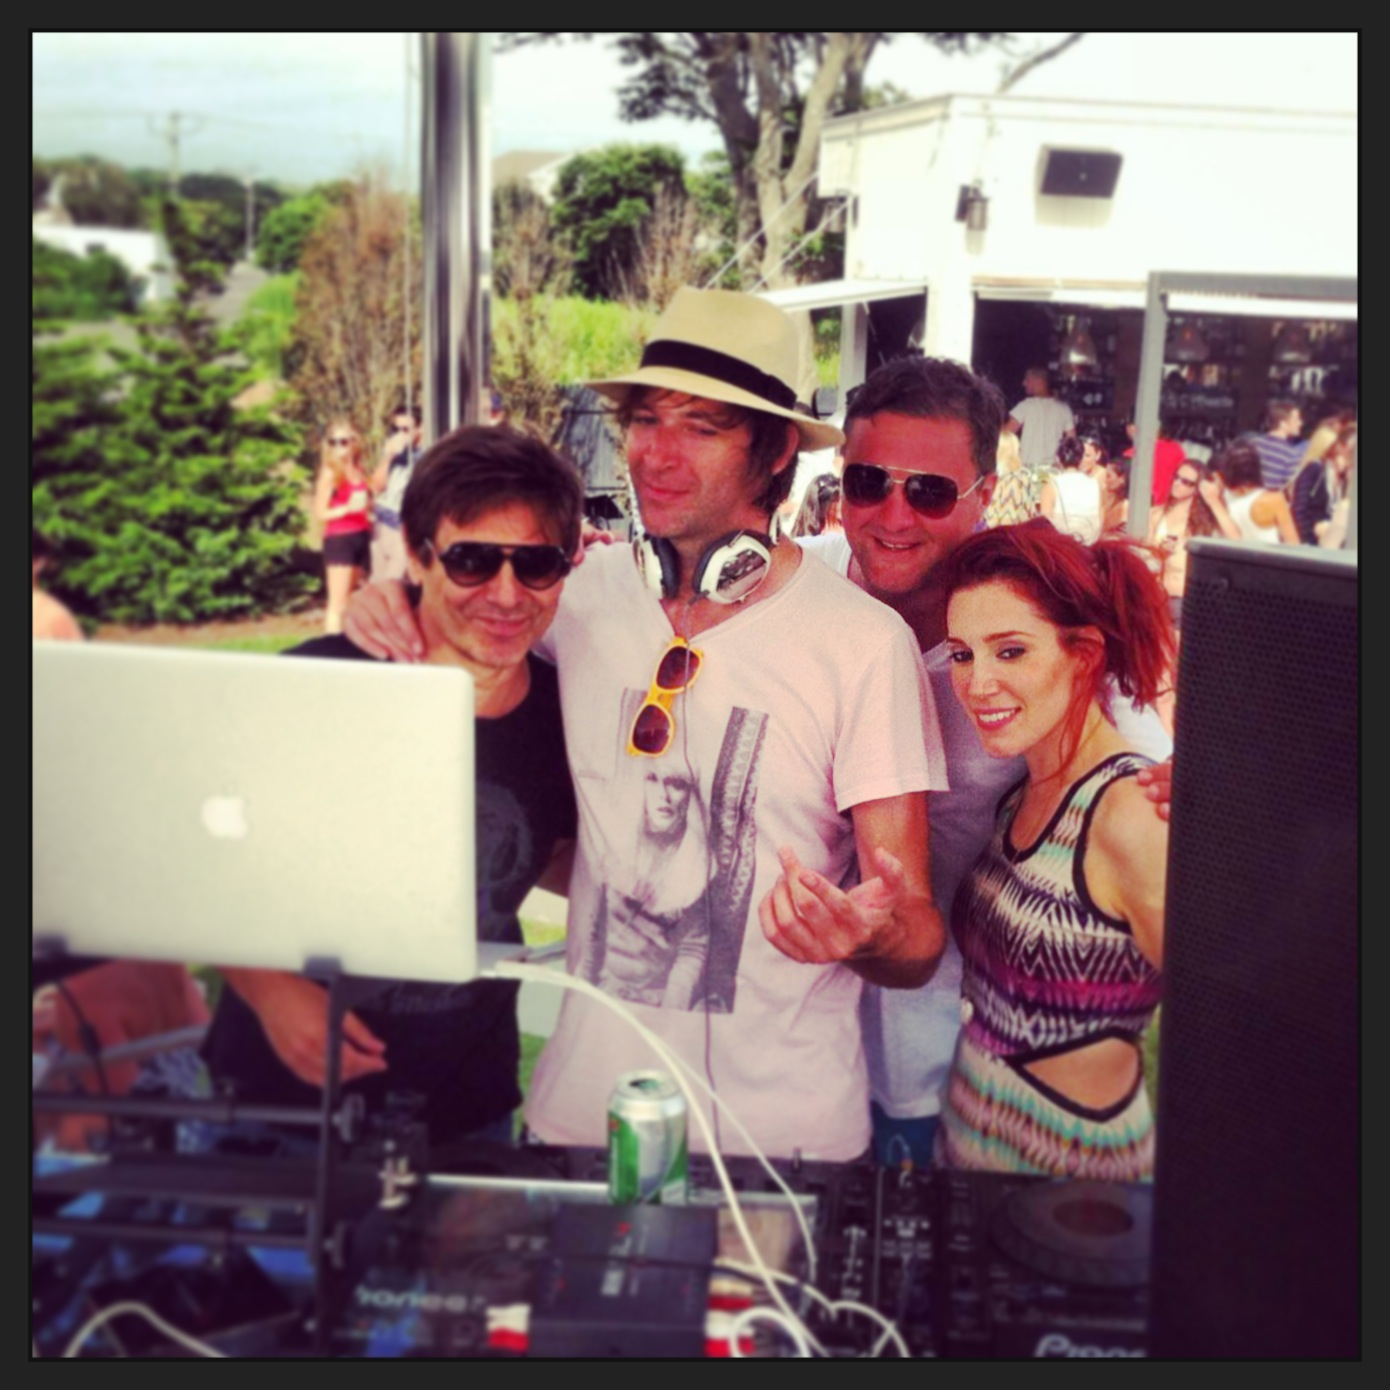 DJing Montauk Beach House with Dirty Vegas and Roger Taylor of Duran Duran